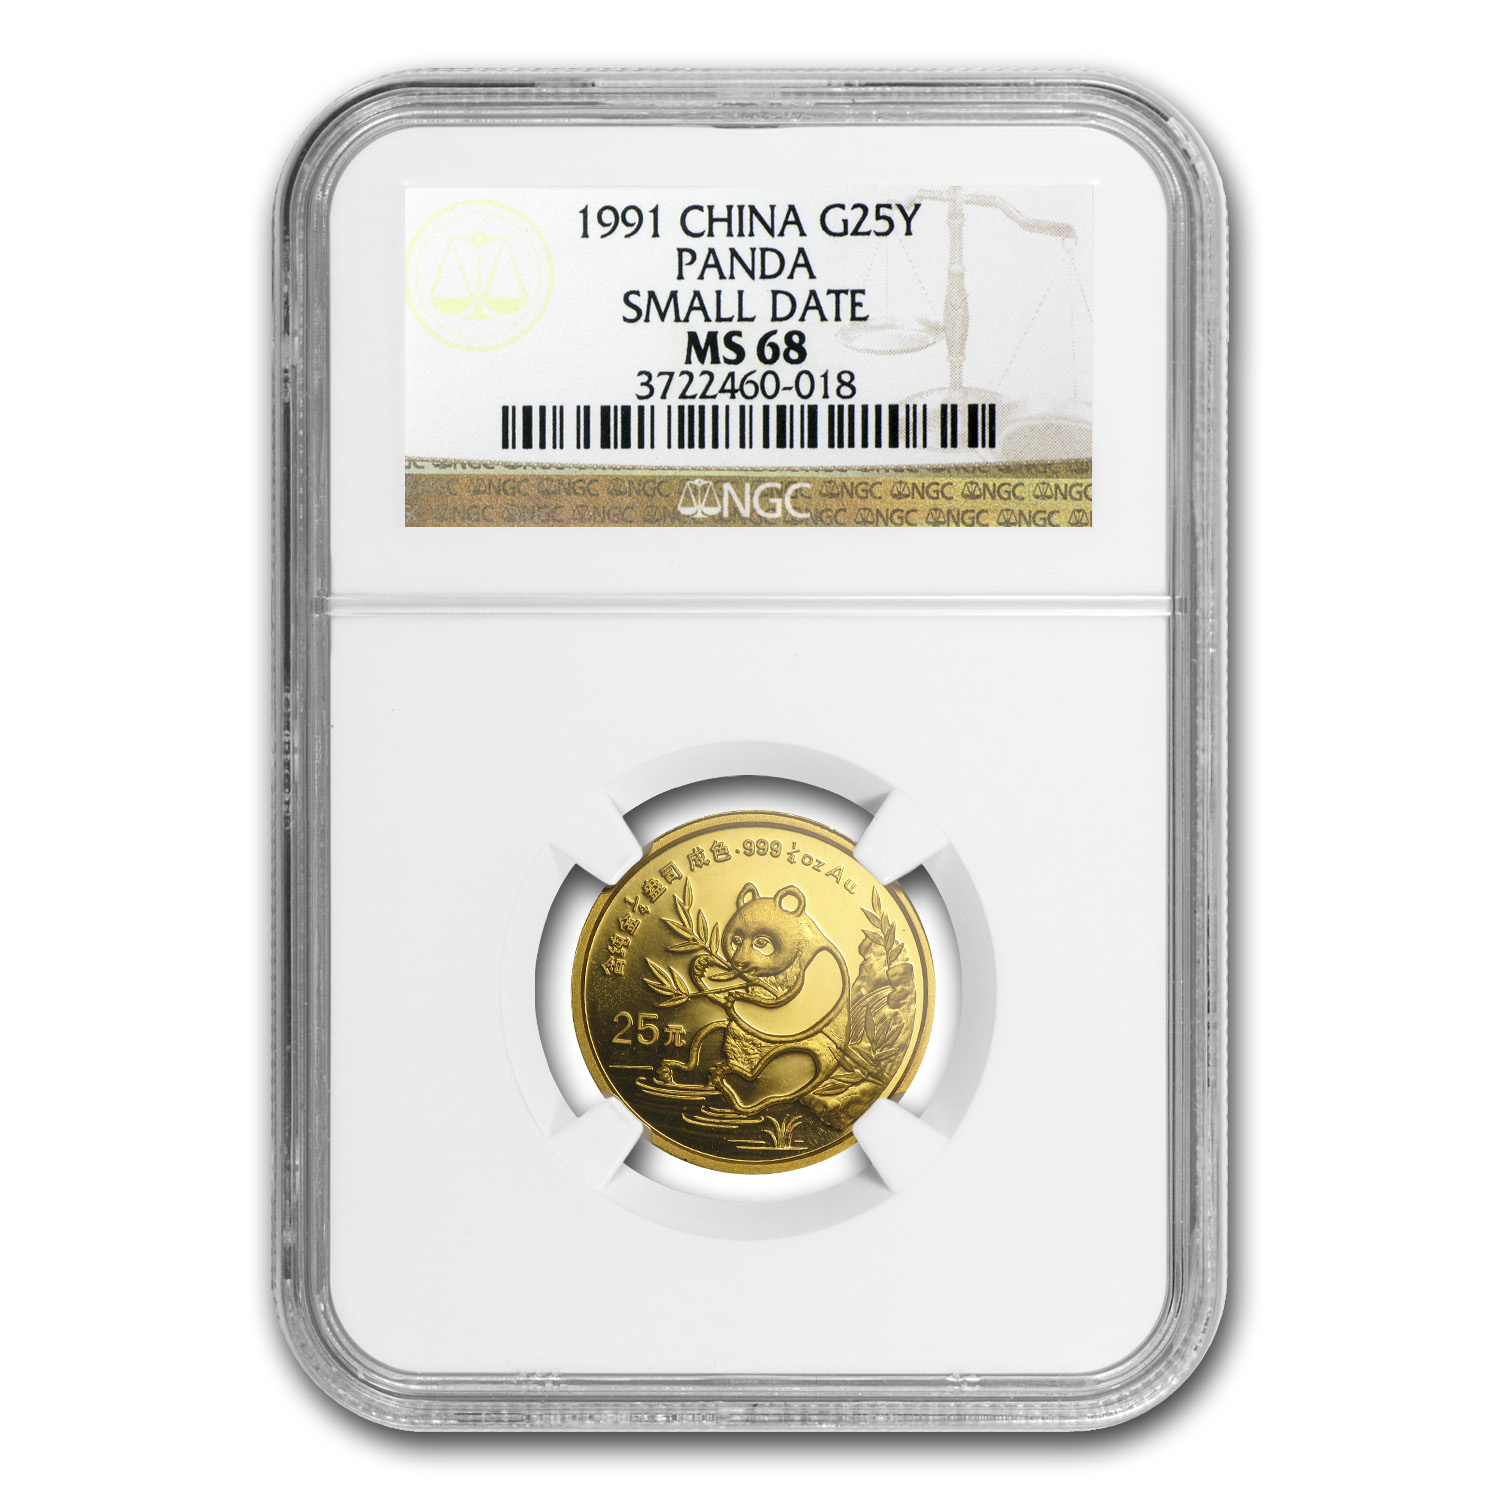 1991 (1/4 oz) Gold Chinese Pandas - Small Date MS-68 NGC